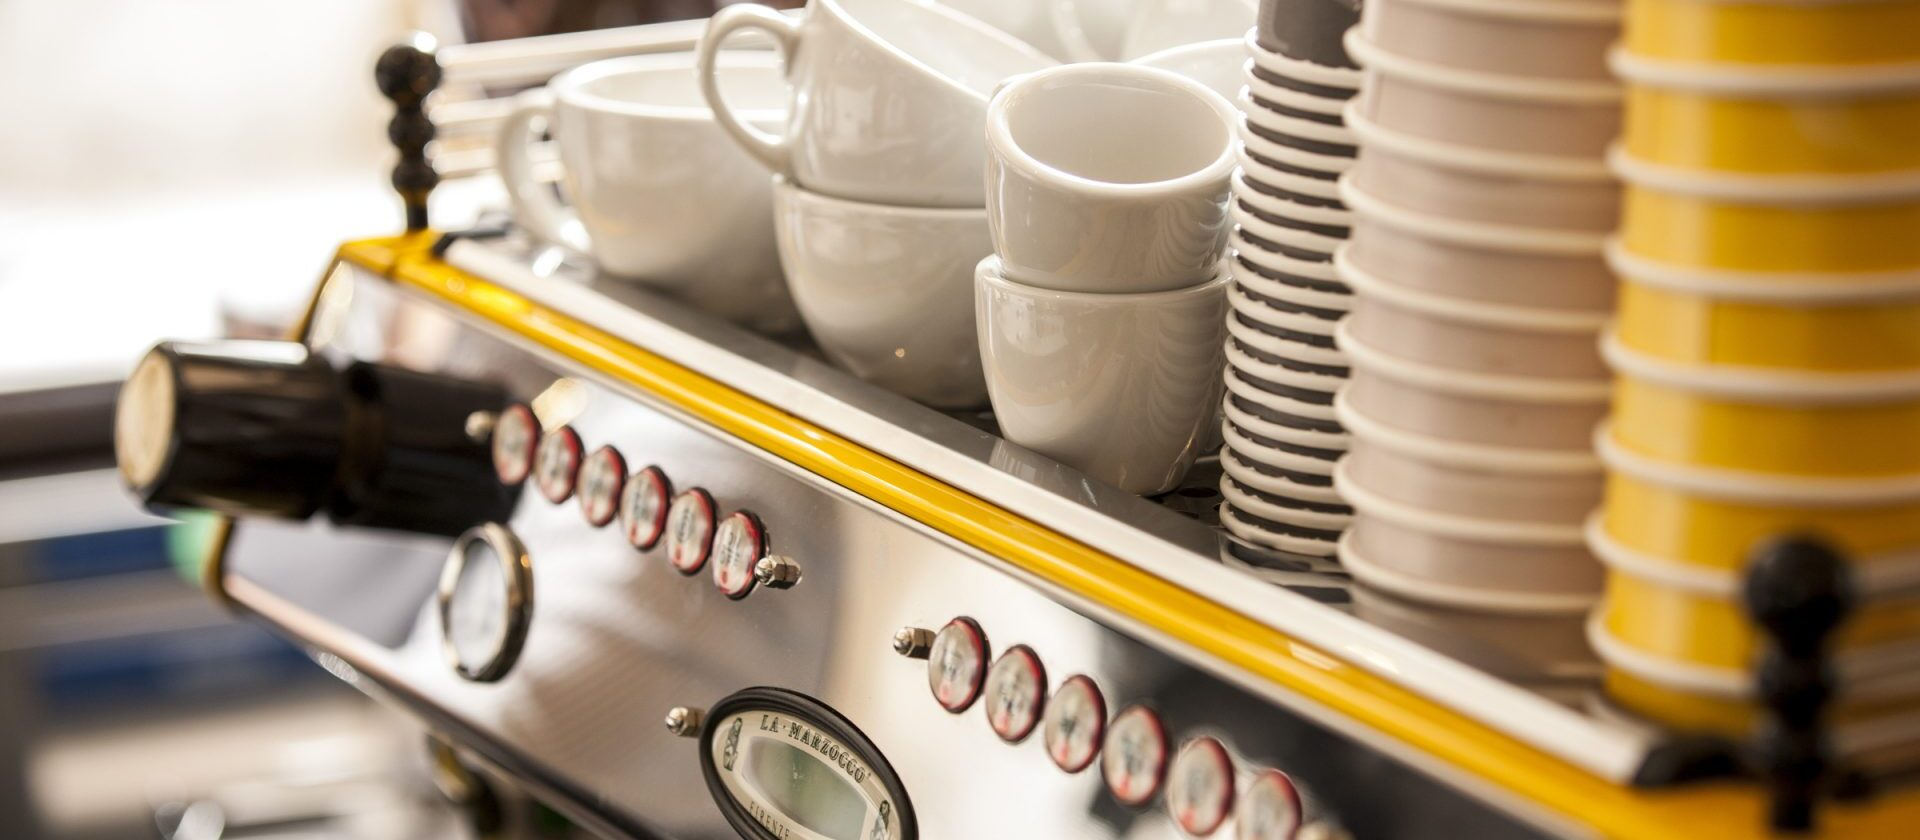 london-the-dorchester-parcafe-coffee-machine-2